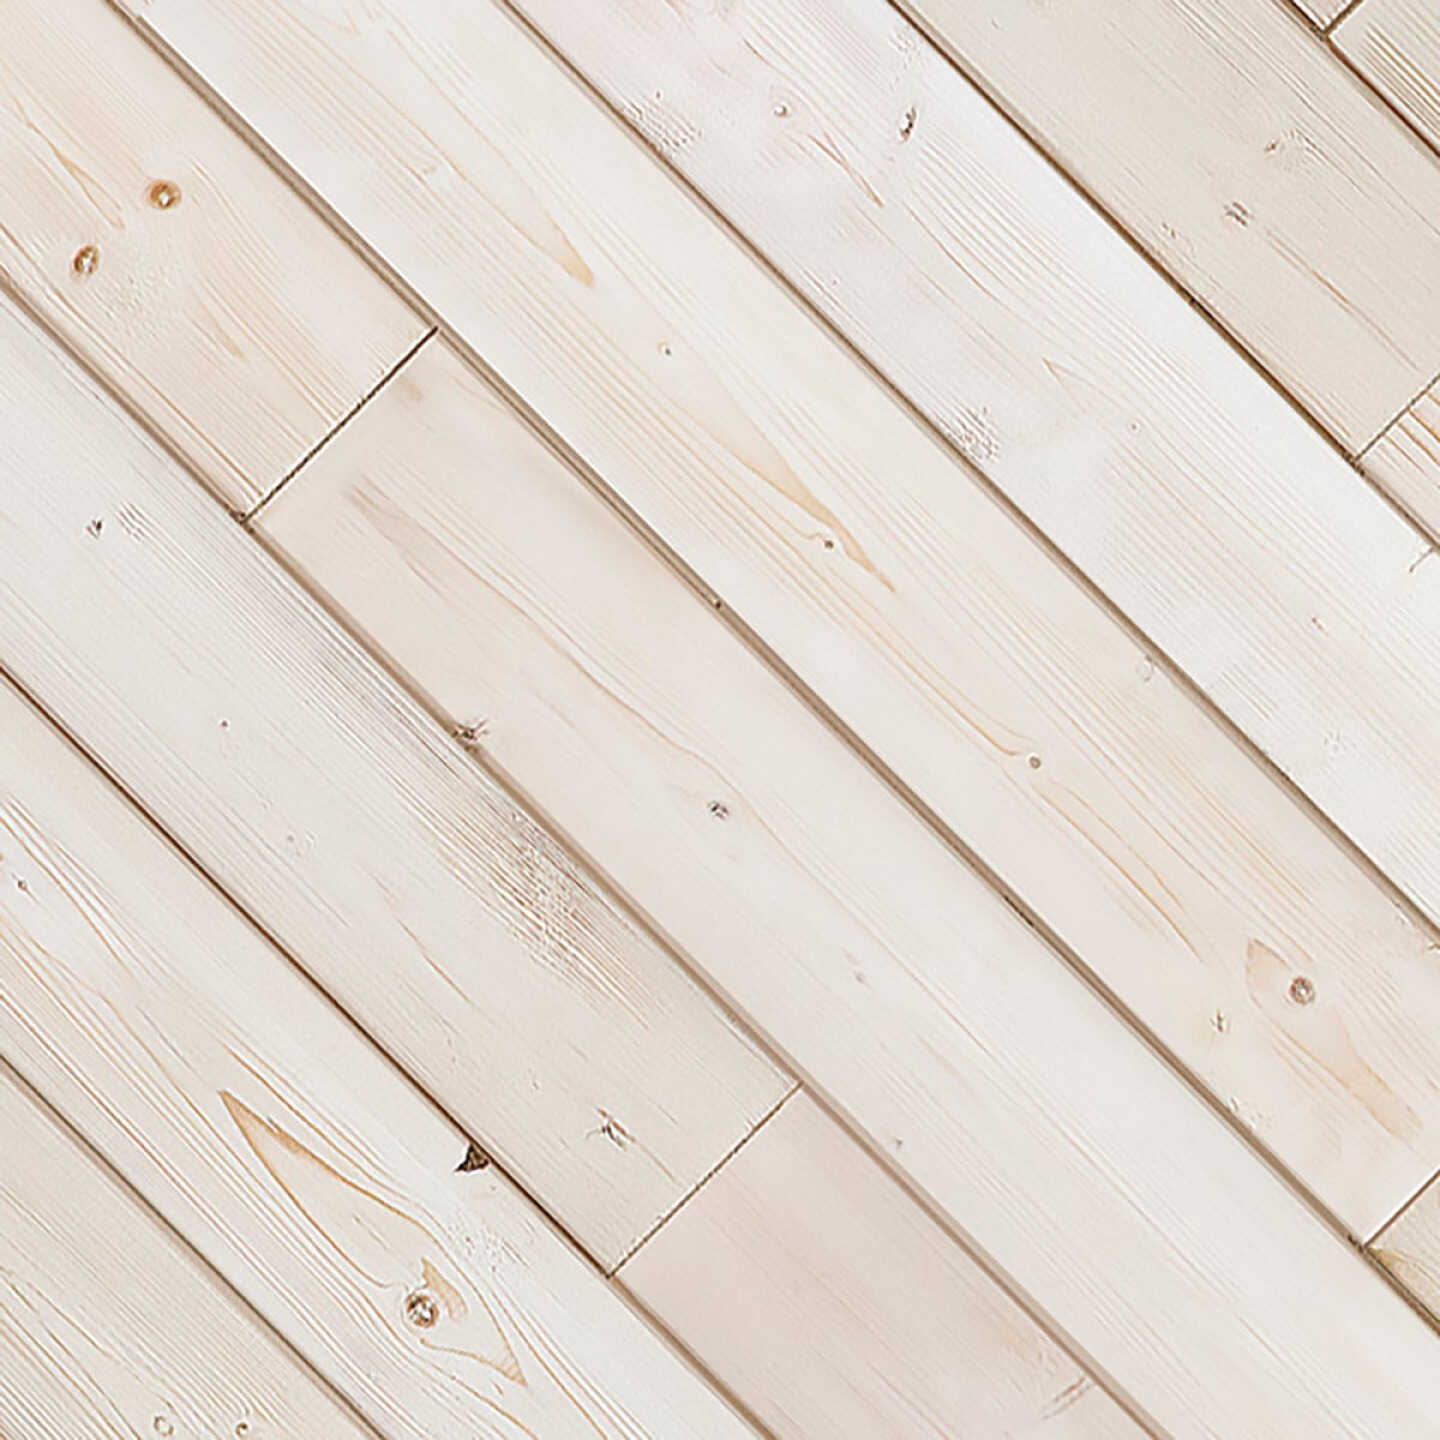 Global Product Sourcing 3-1/2 In. W. x 1/4 In. Thick Solid Wood White Reclaimed Wood Wall Plank Image 1